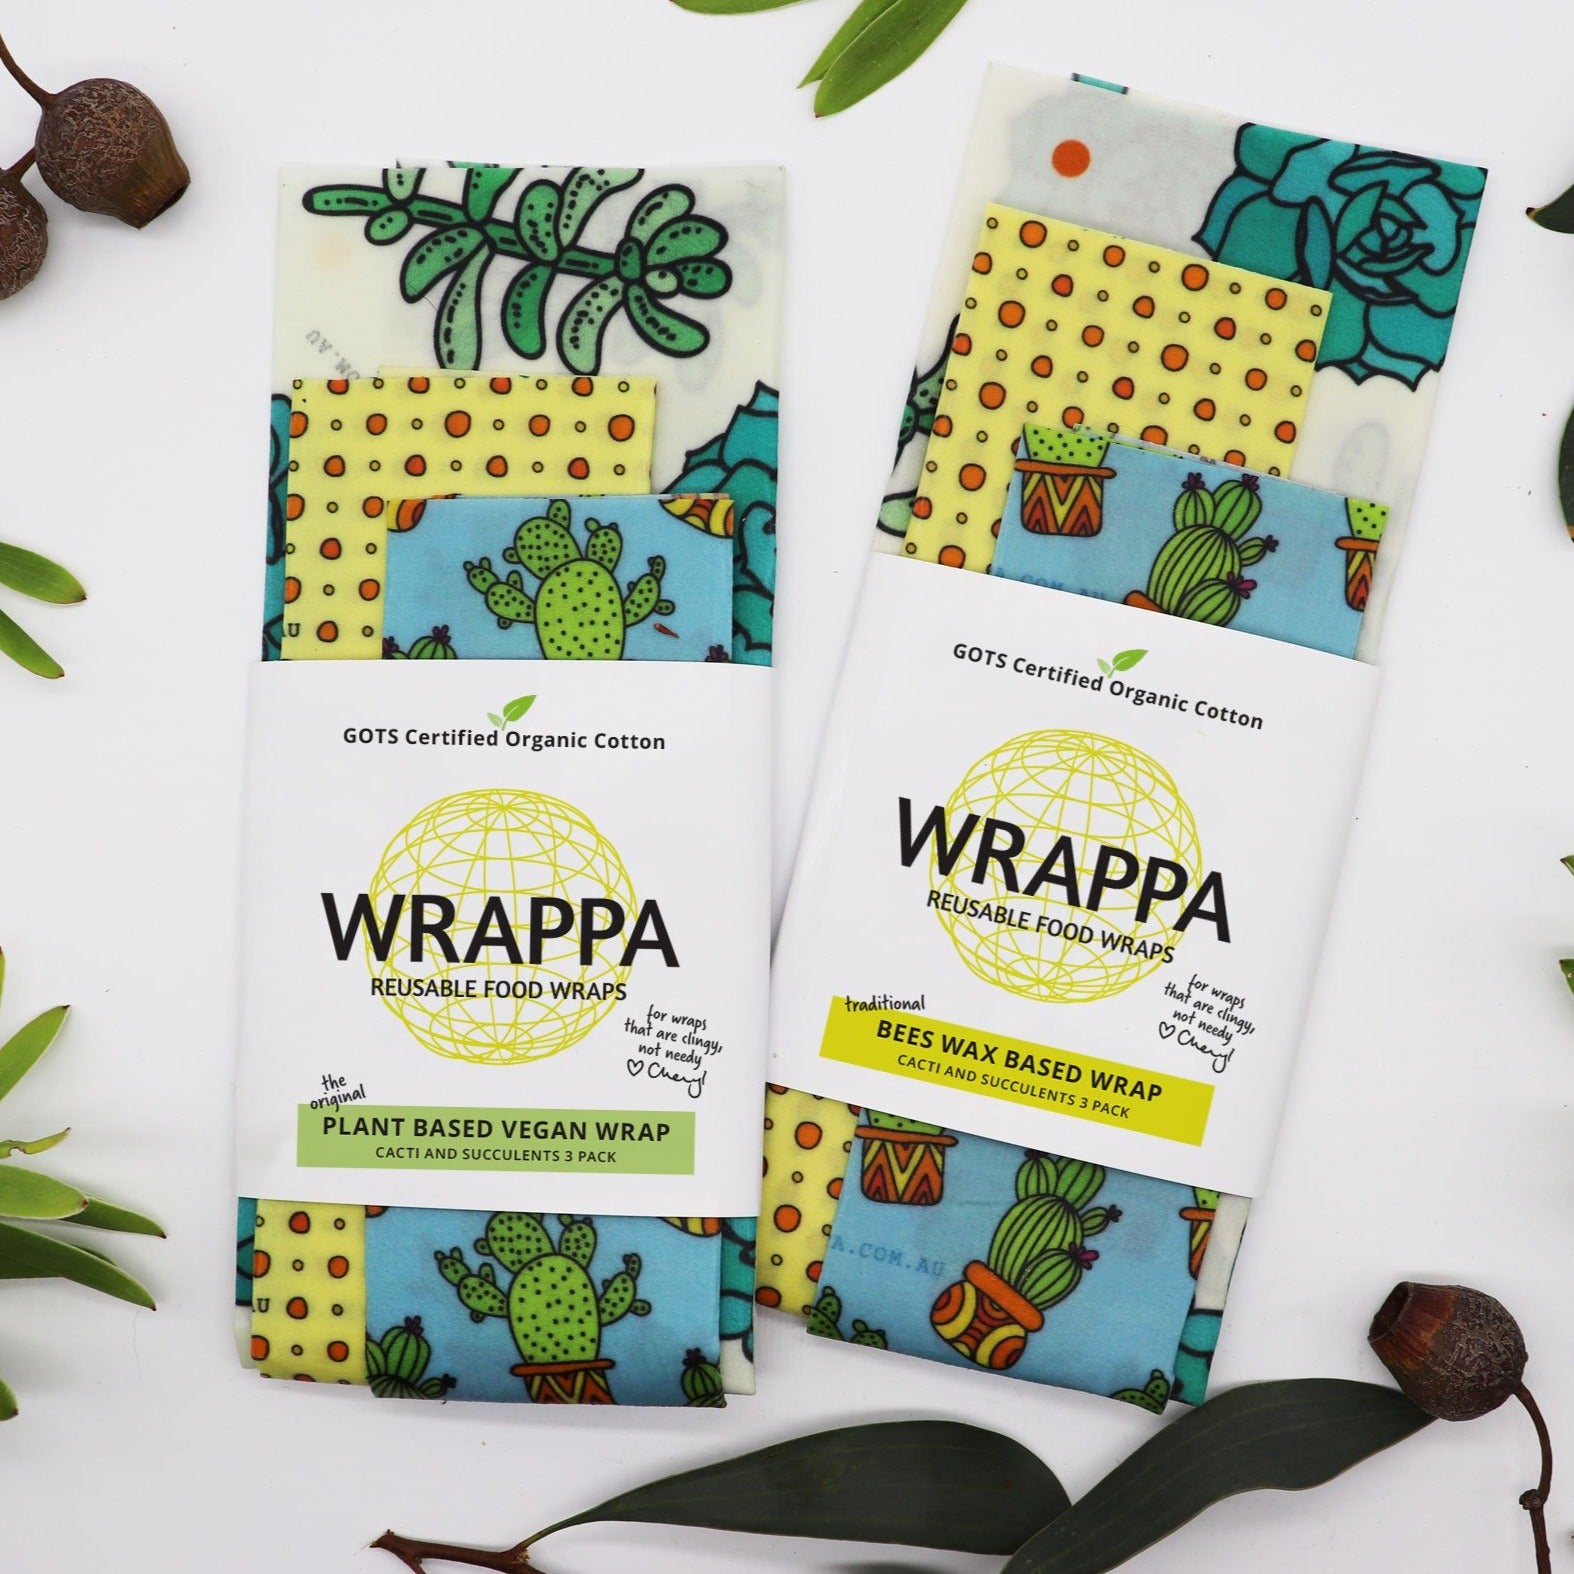 Wrappa Vegan Food Wrap 3 Pack